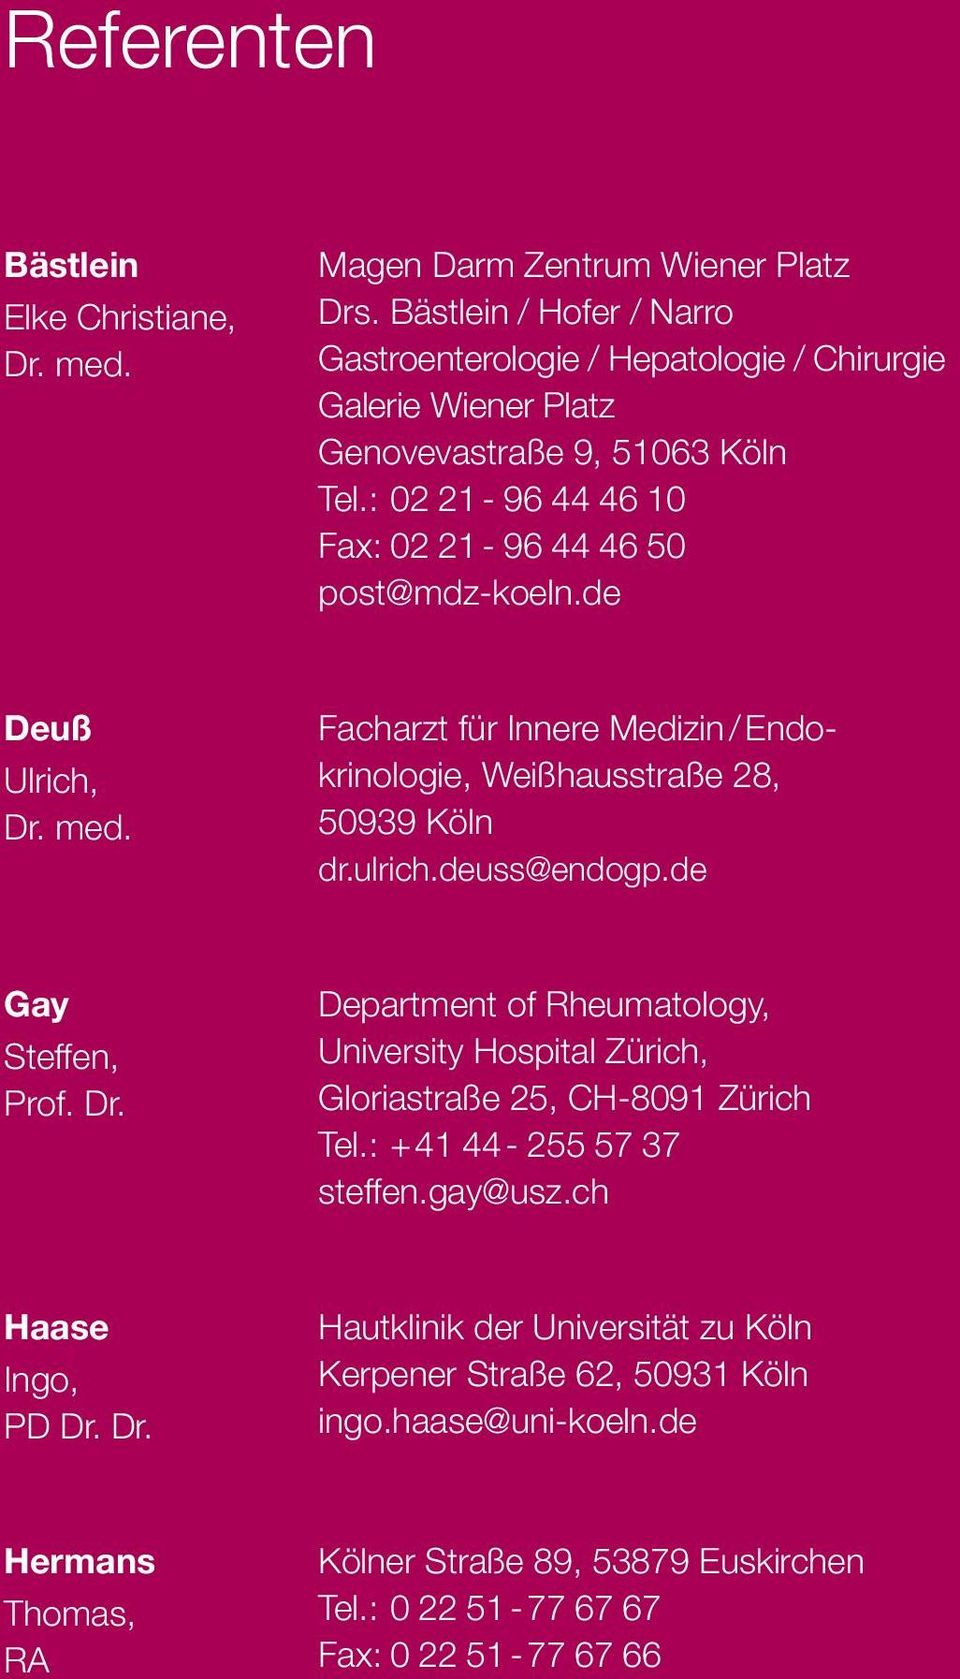 de Deuß Ulrich, Dr. med. Facharzt für Innere Medizin / Endokrinologie, Weißhausstraße 28, 50939 Köln dr.ulrich.deuss@endogp.de Gay Steffen, Prof. Dr. Department of Rheumatology, University Hospital Zürich, Gloriastraße 25, CH-8091 Zürich Tel.